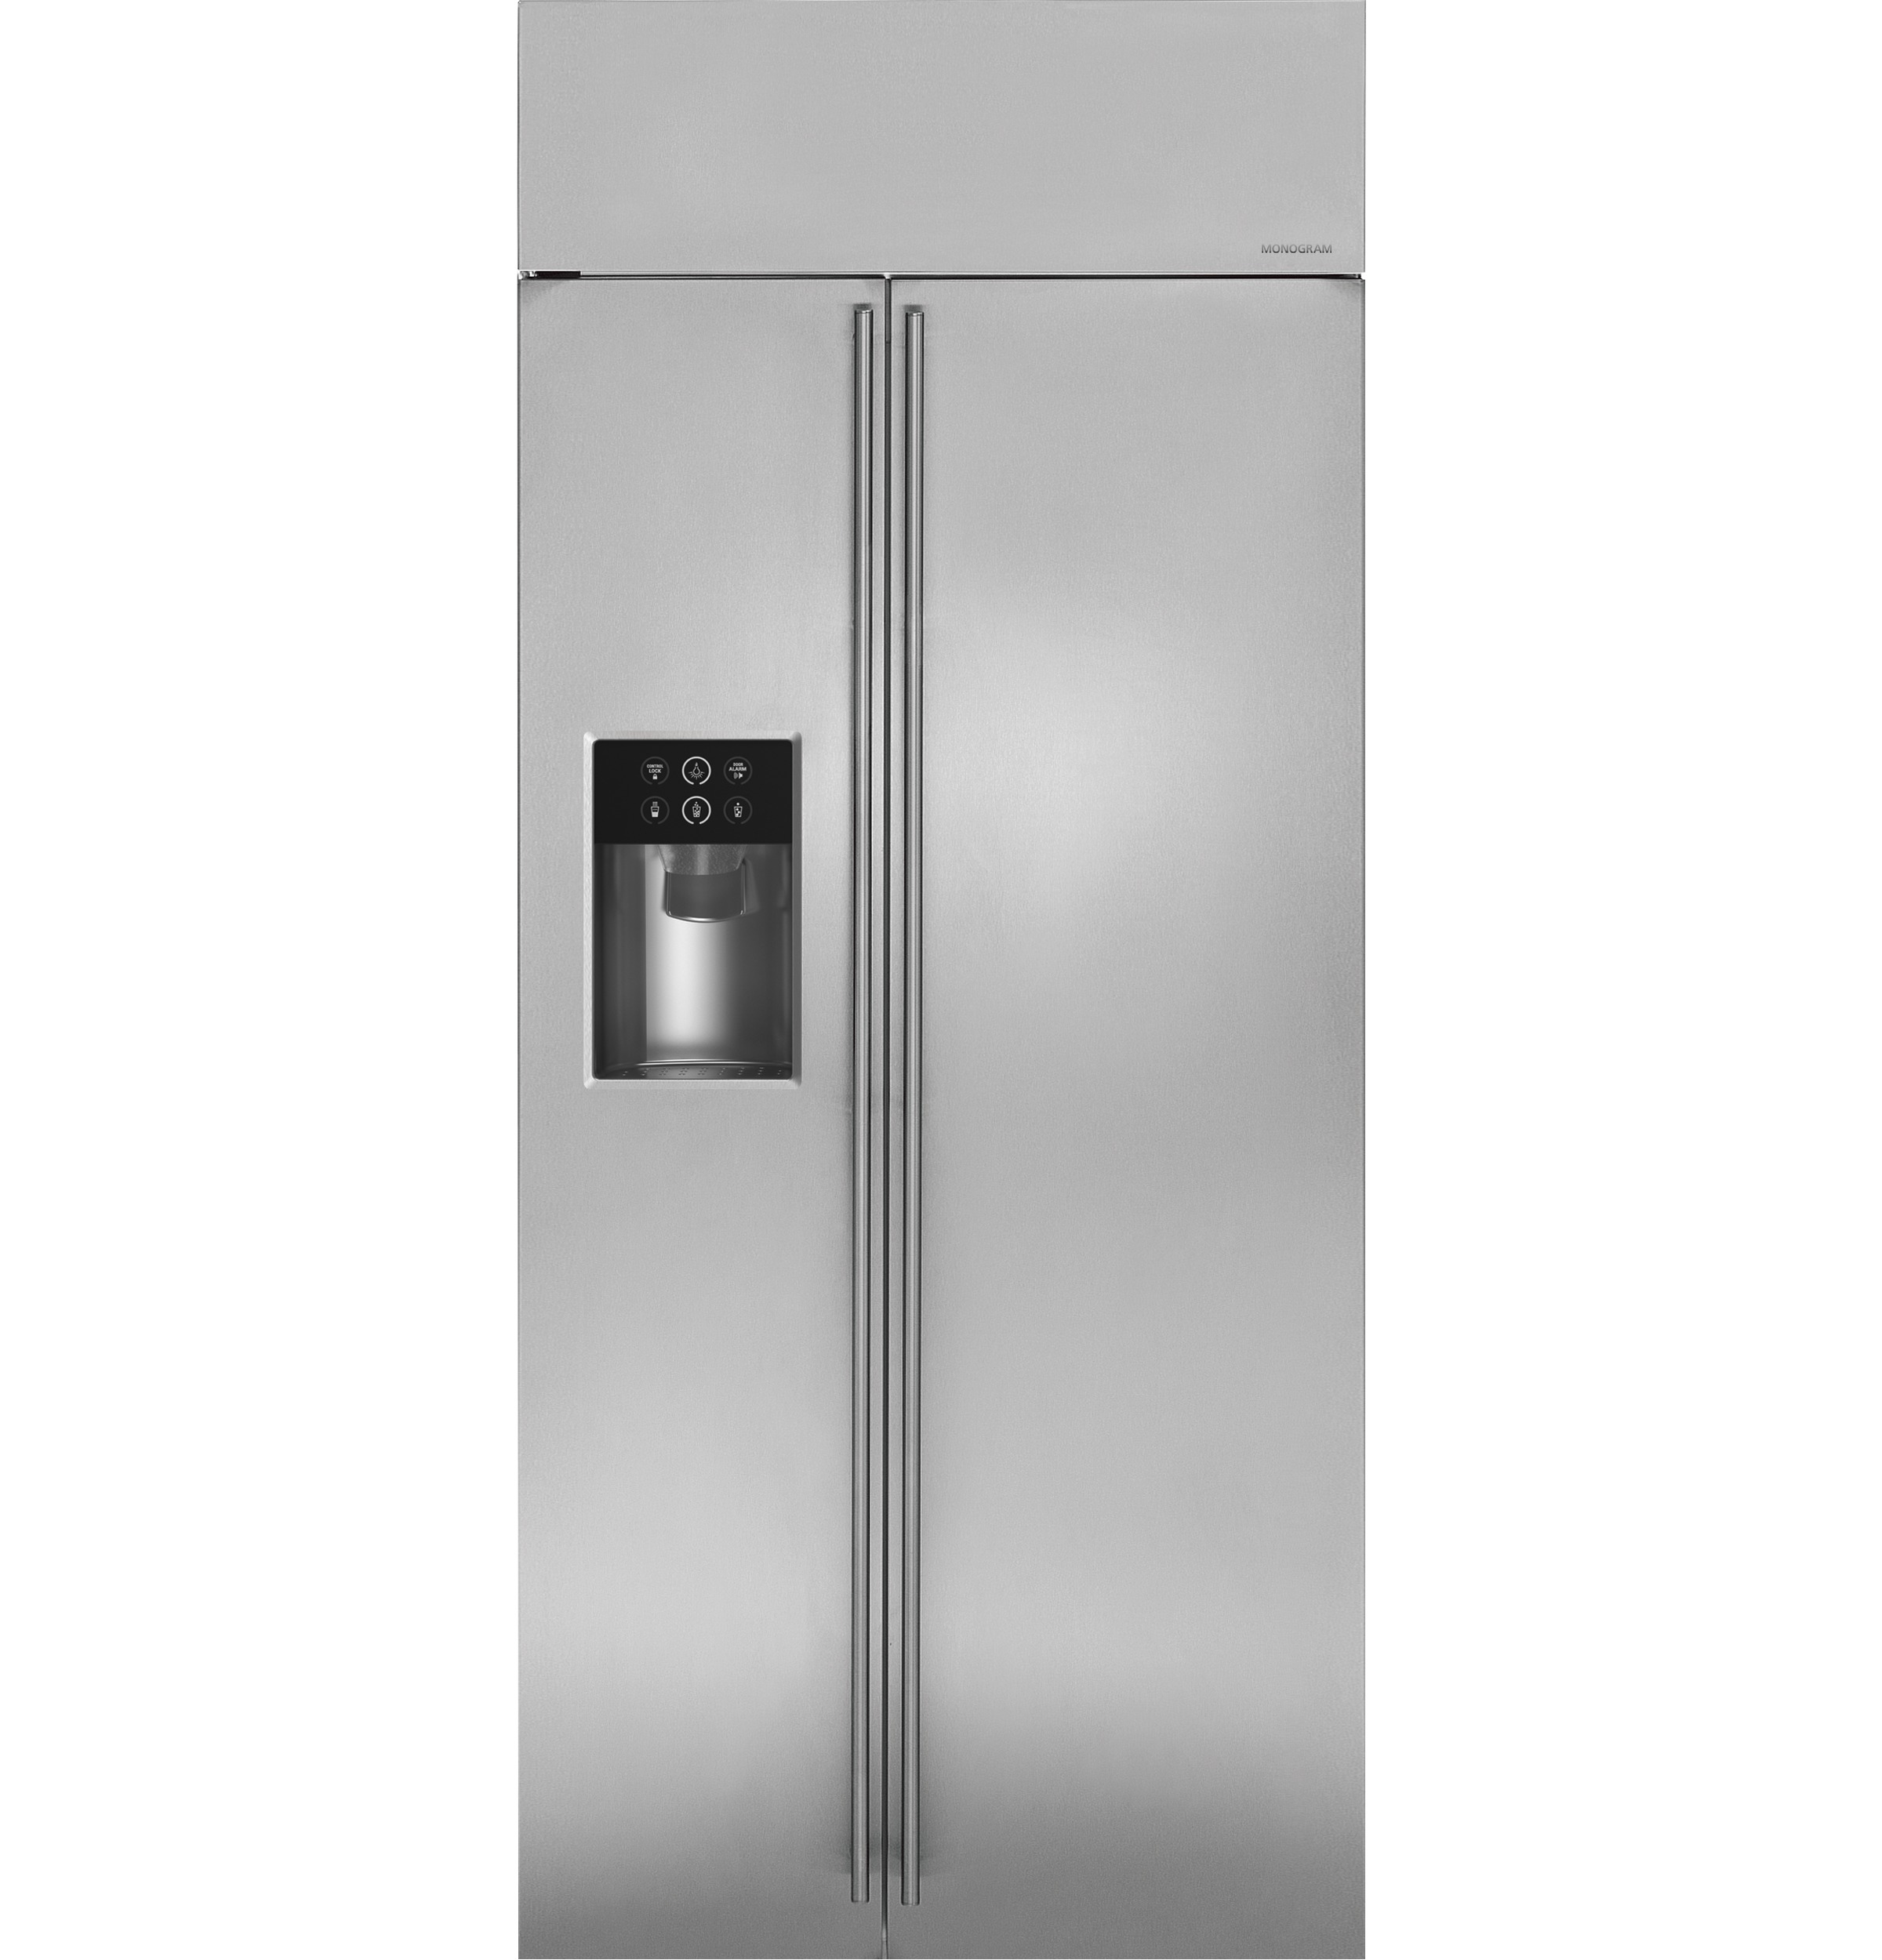 "Monogram Monogram 36"" Built-In Side-by-Side Refrigerator with Dispenser"